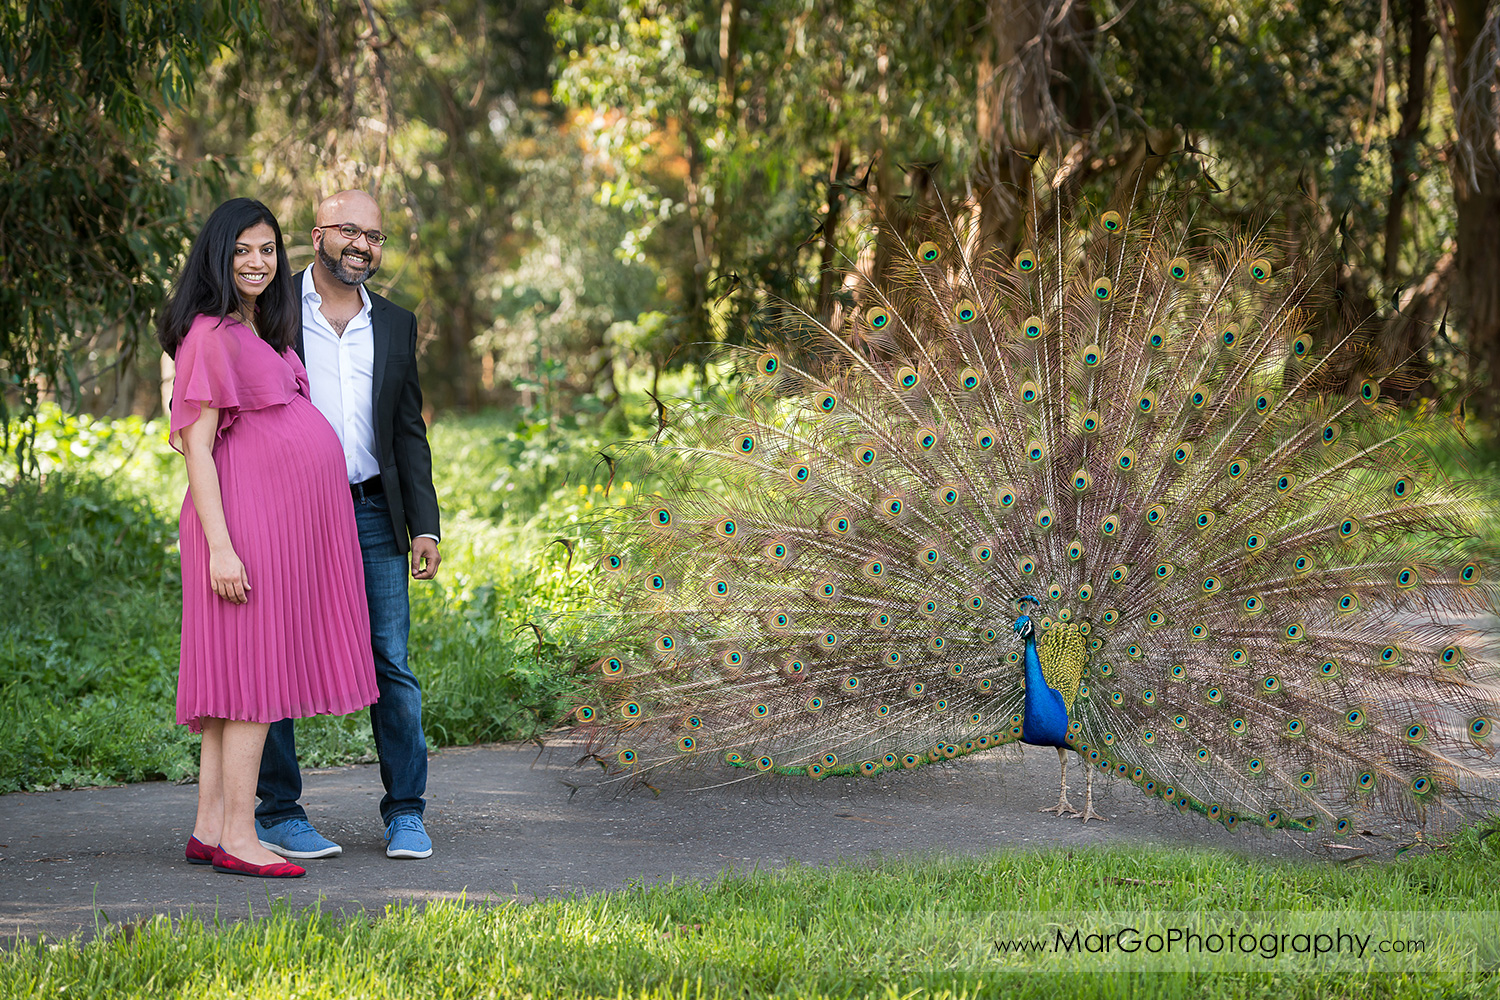 man in dark jacket and pregnant woman in pink dress standing next to peacock in Ardenwood Historic Farm